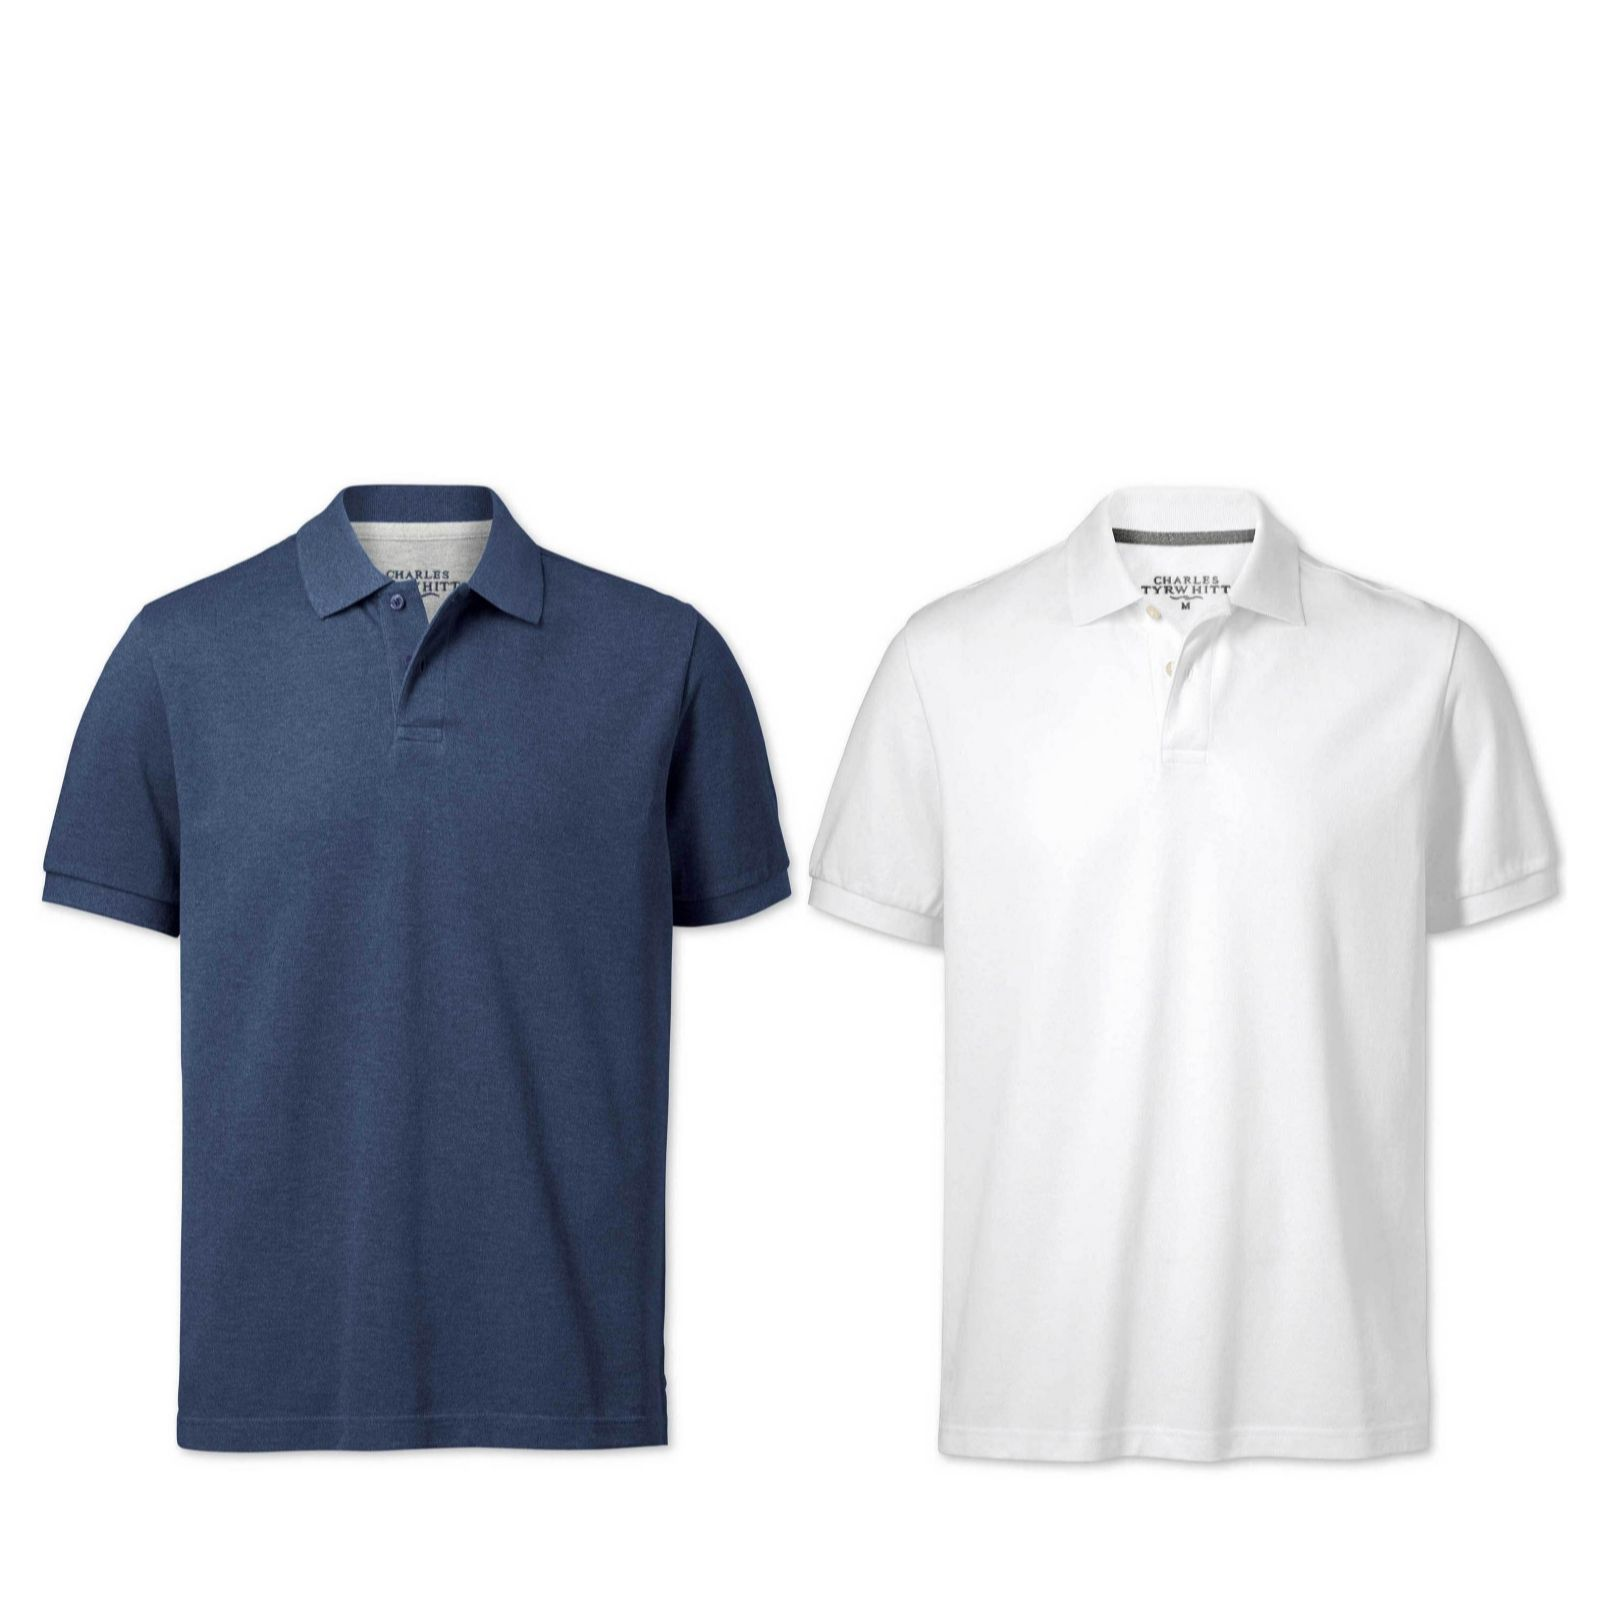 48ef98c70 Charles Tyrwhitt Mens 2 Pack Short Sleeve Polo Shirts - QVC UK